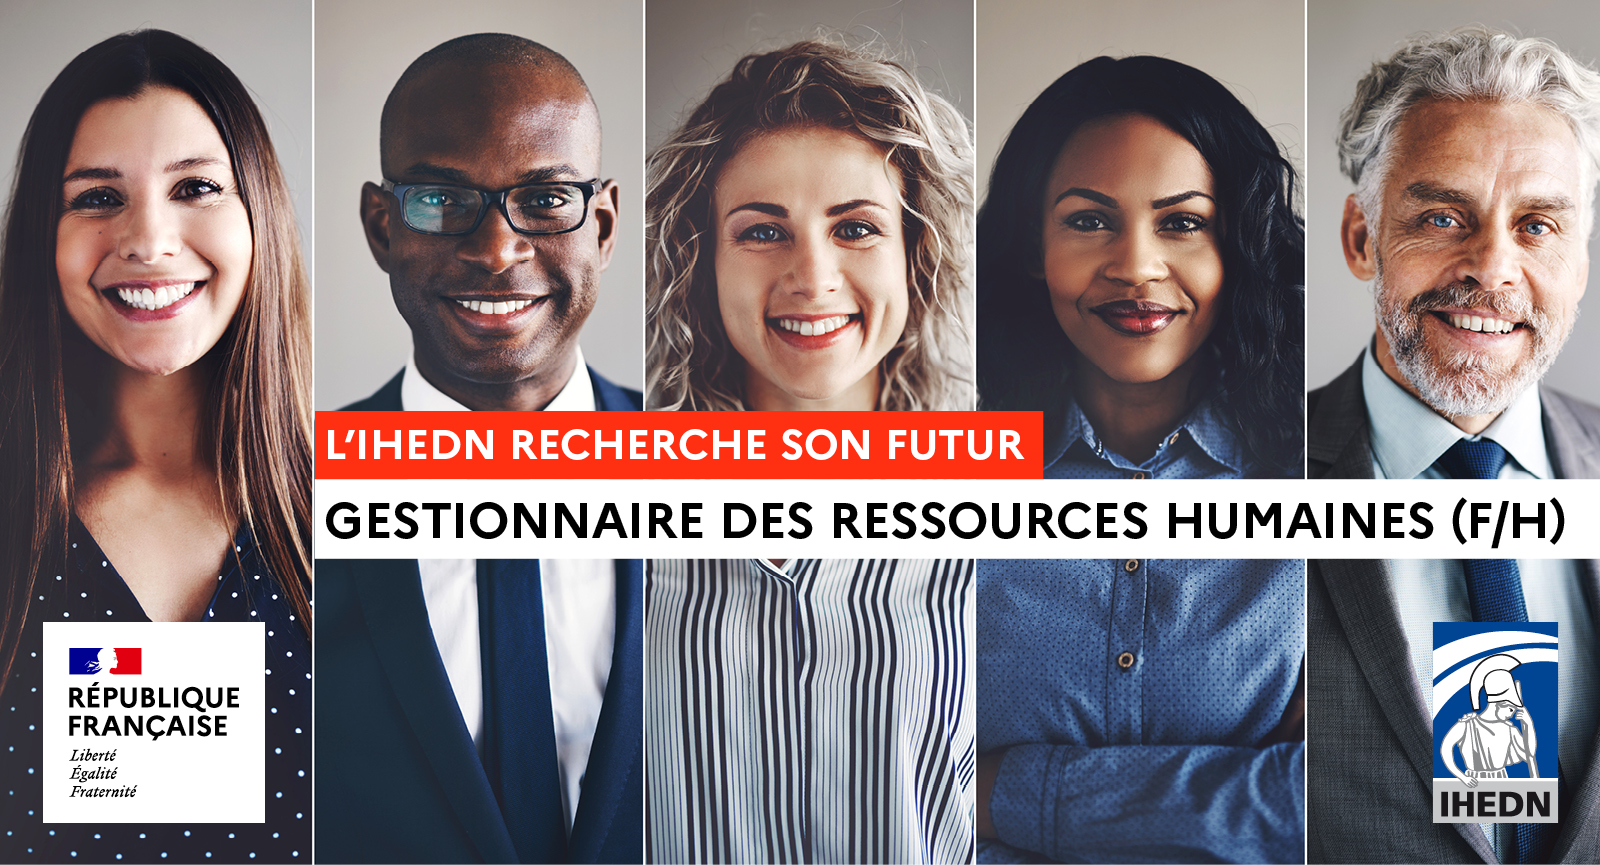 IHEDN - Gestionnaire des ressources humaines (F/H)